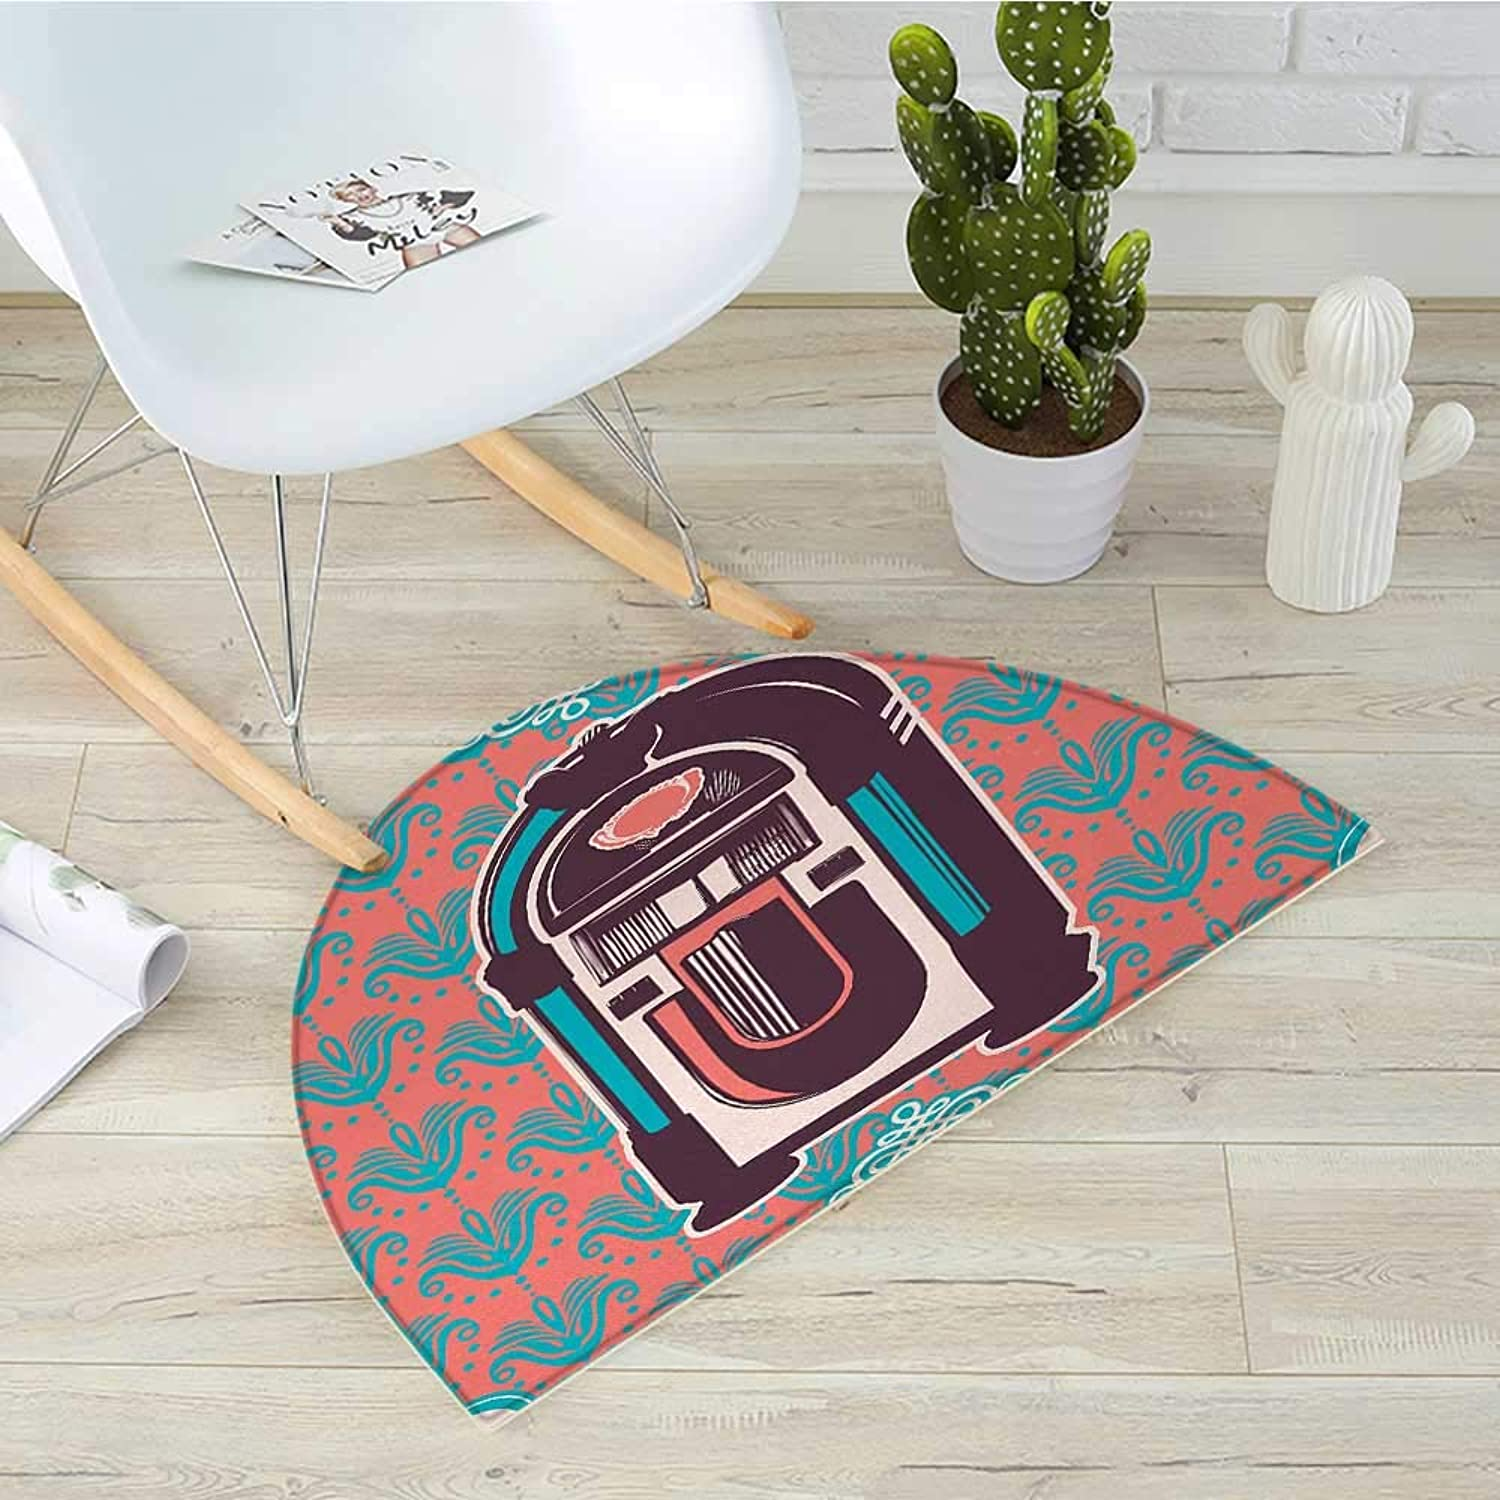 Jukebox Semicircle Doormat Floral Paisley Inspired Backdrop with Music Box Retro Party Print Halfmoon doormats H 31.5  xD 47.2  Turquoise Coral Dried pink